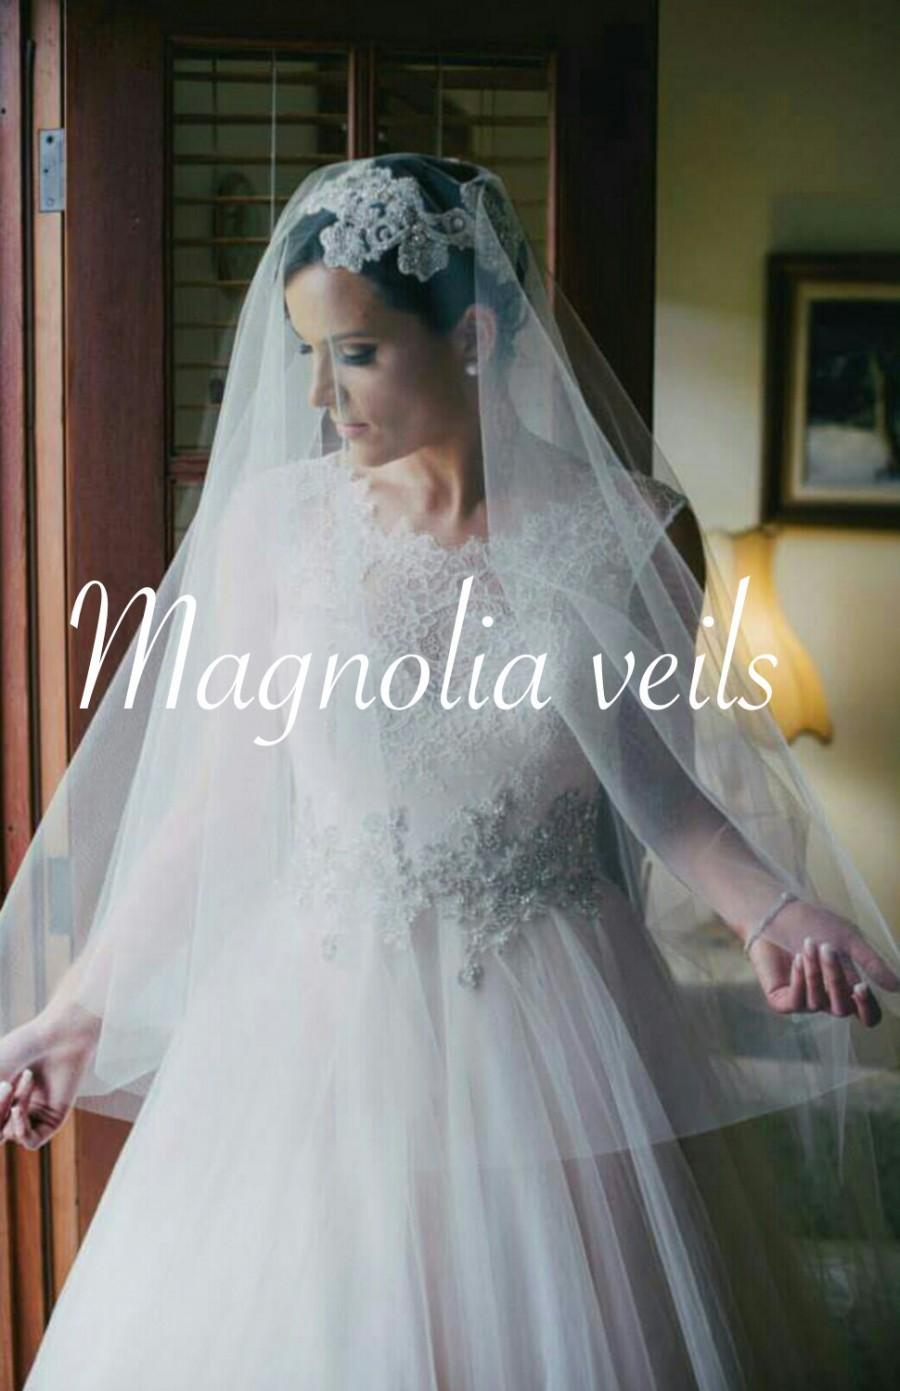 Drop Veil With Blusher Wedding Bridal Champagne Ivory Blush Color Diamond White Light Simple Floating